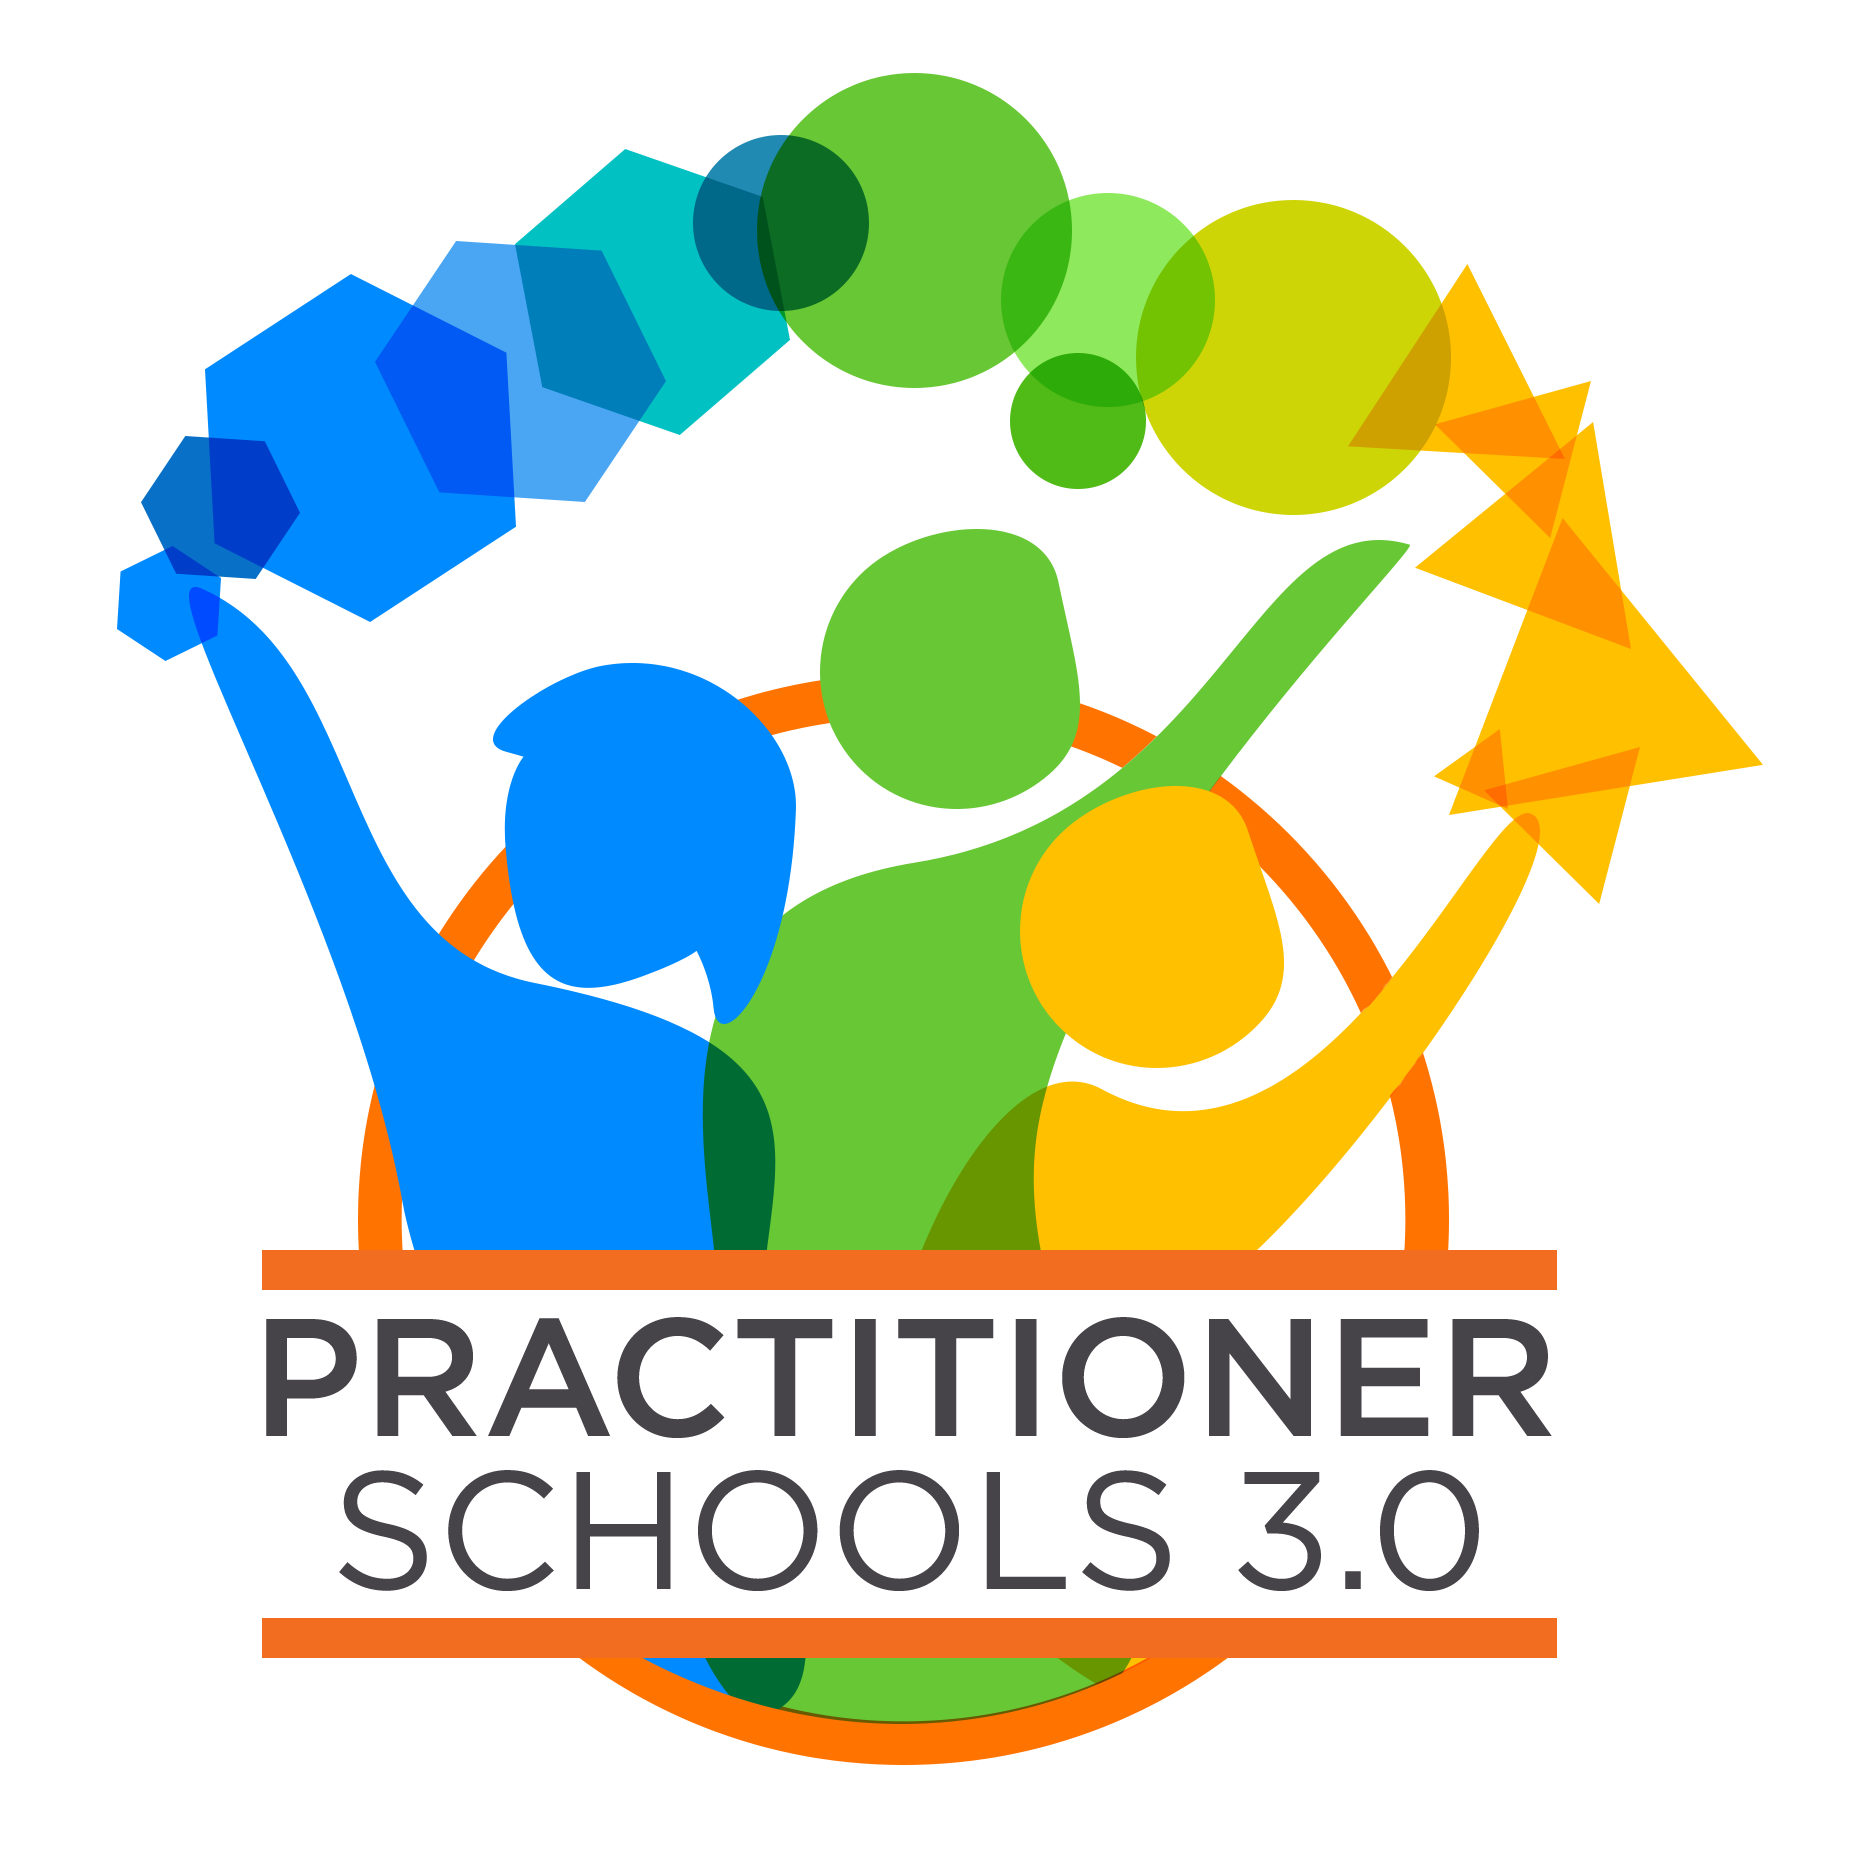 Practitioner Schools 3.0: Innovative Designer